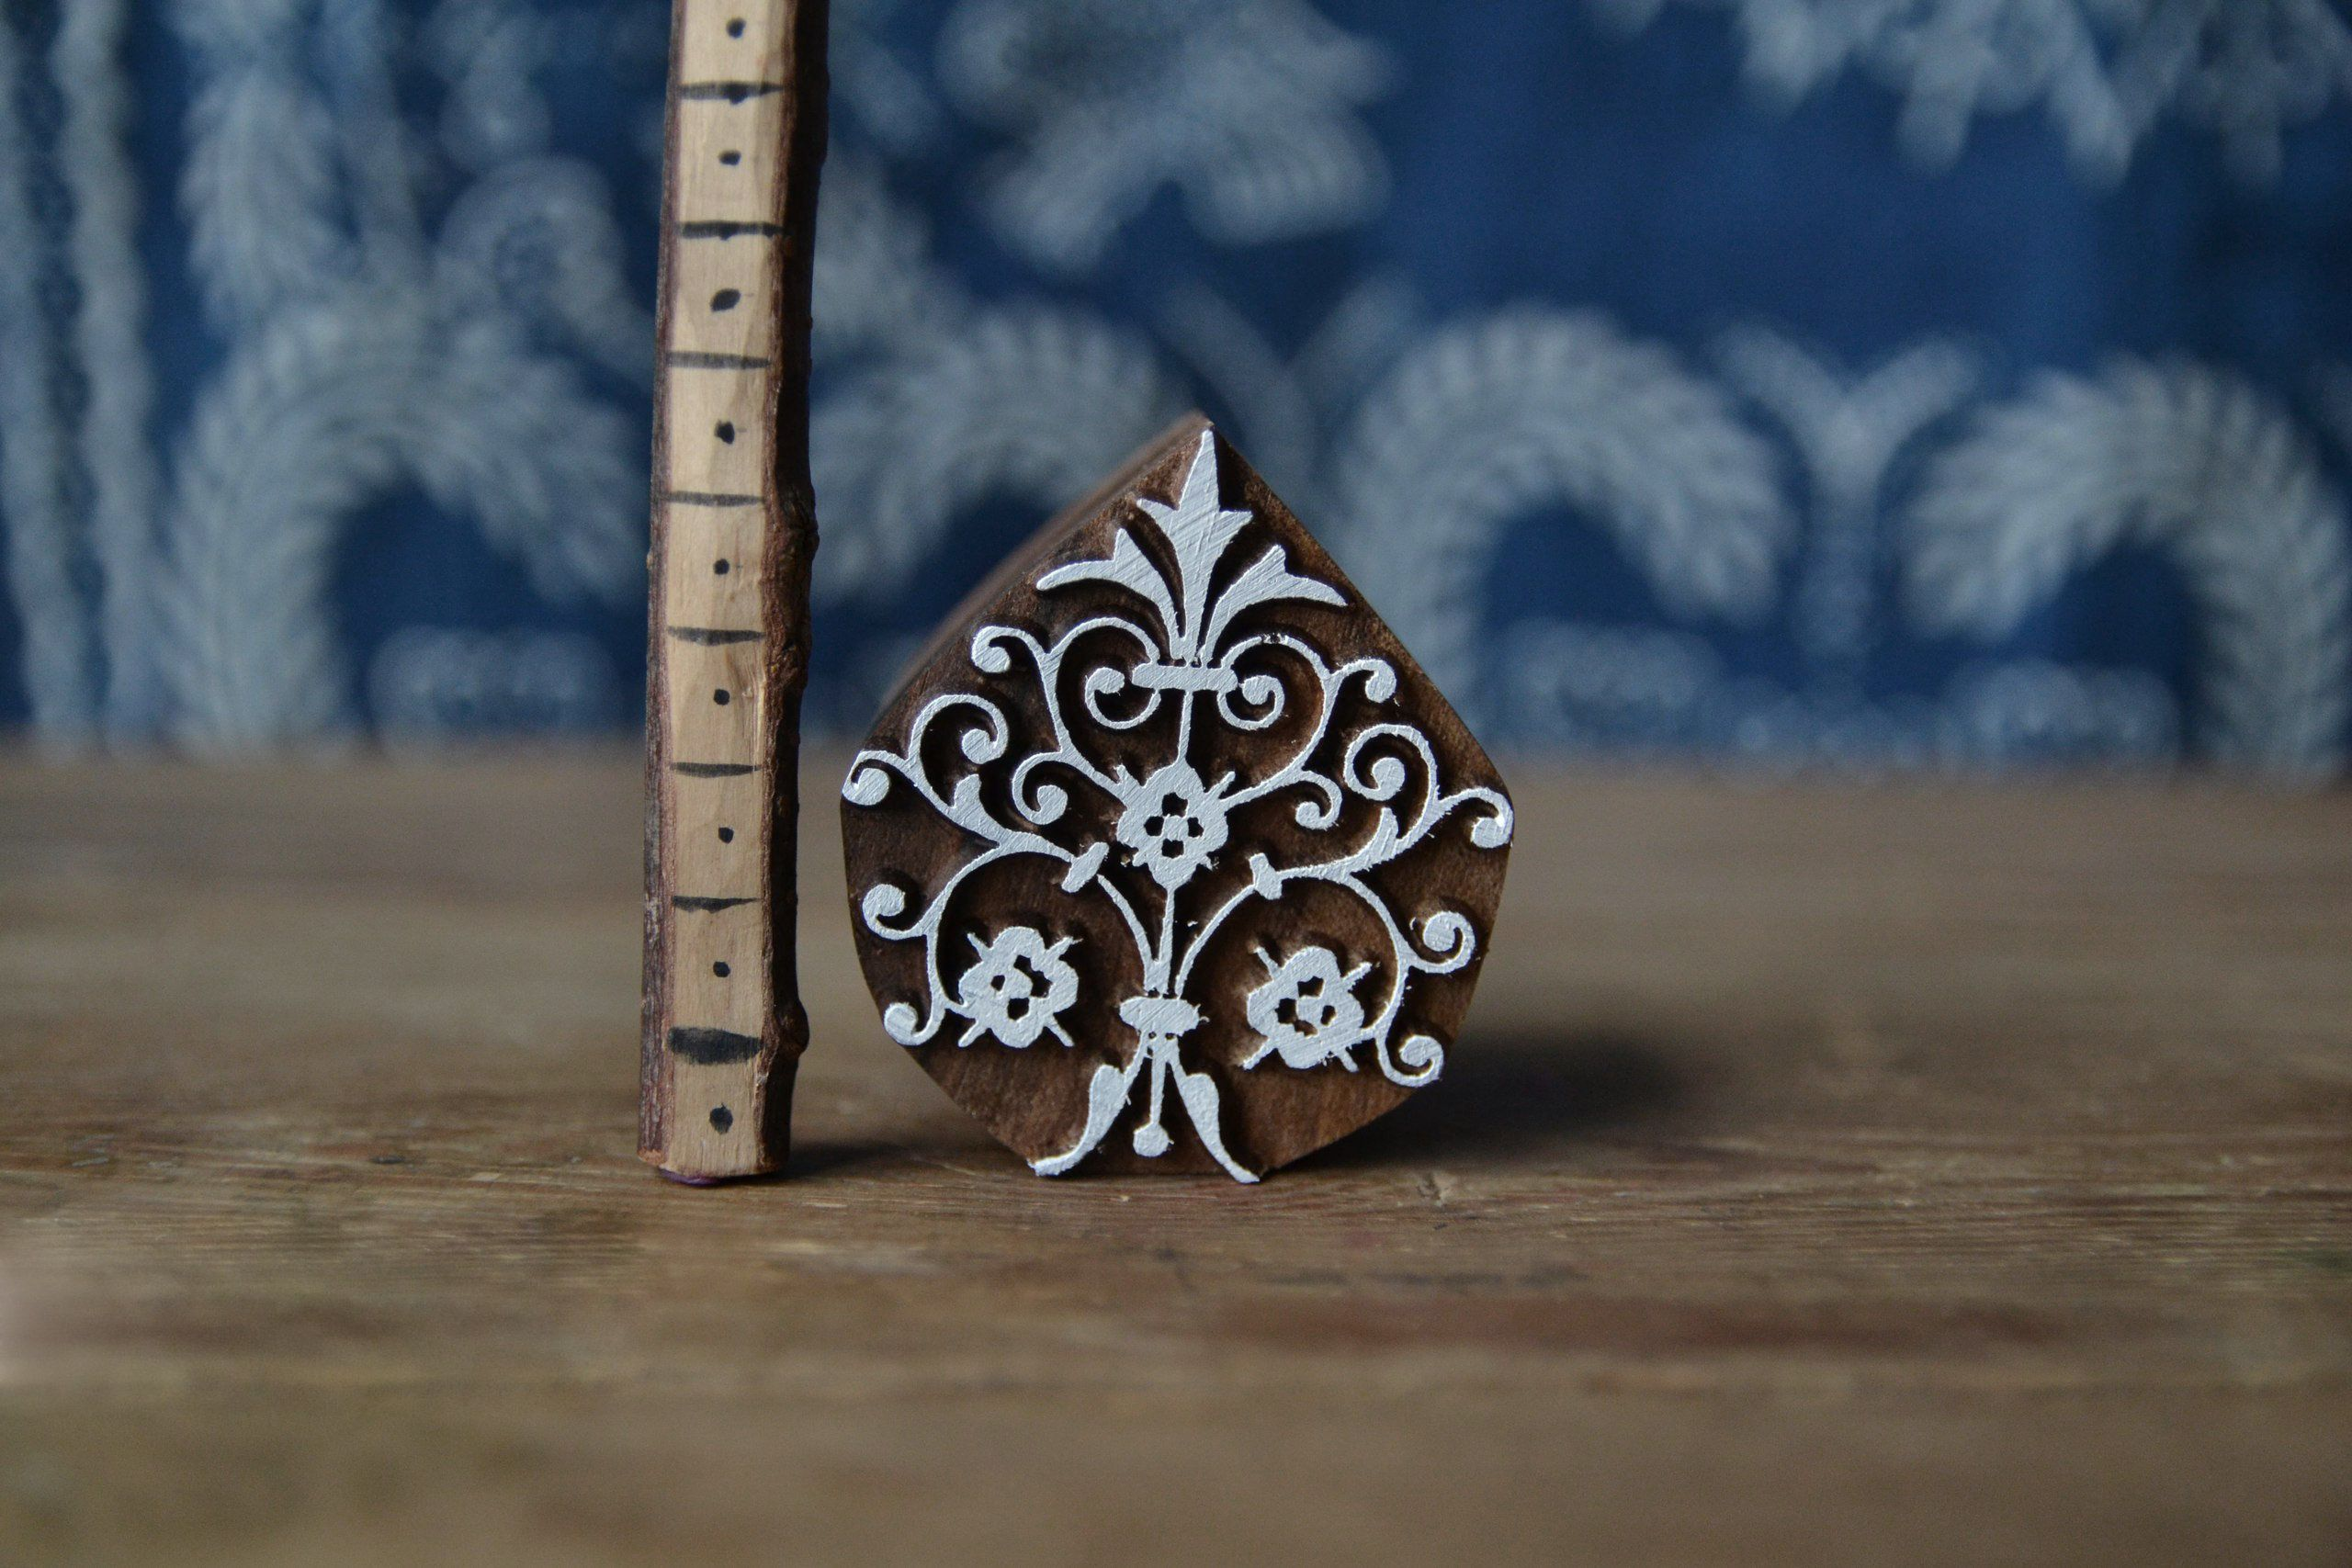 Handmade Ethnic Crafts Cards Print Making Spikelet Wooden Stamp For Block Printing Leather Gift Idea. Textile Pottery